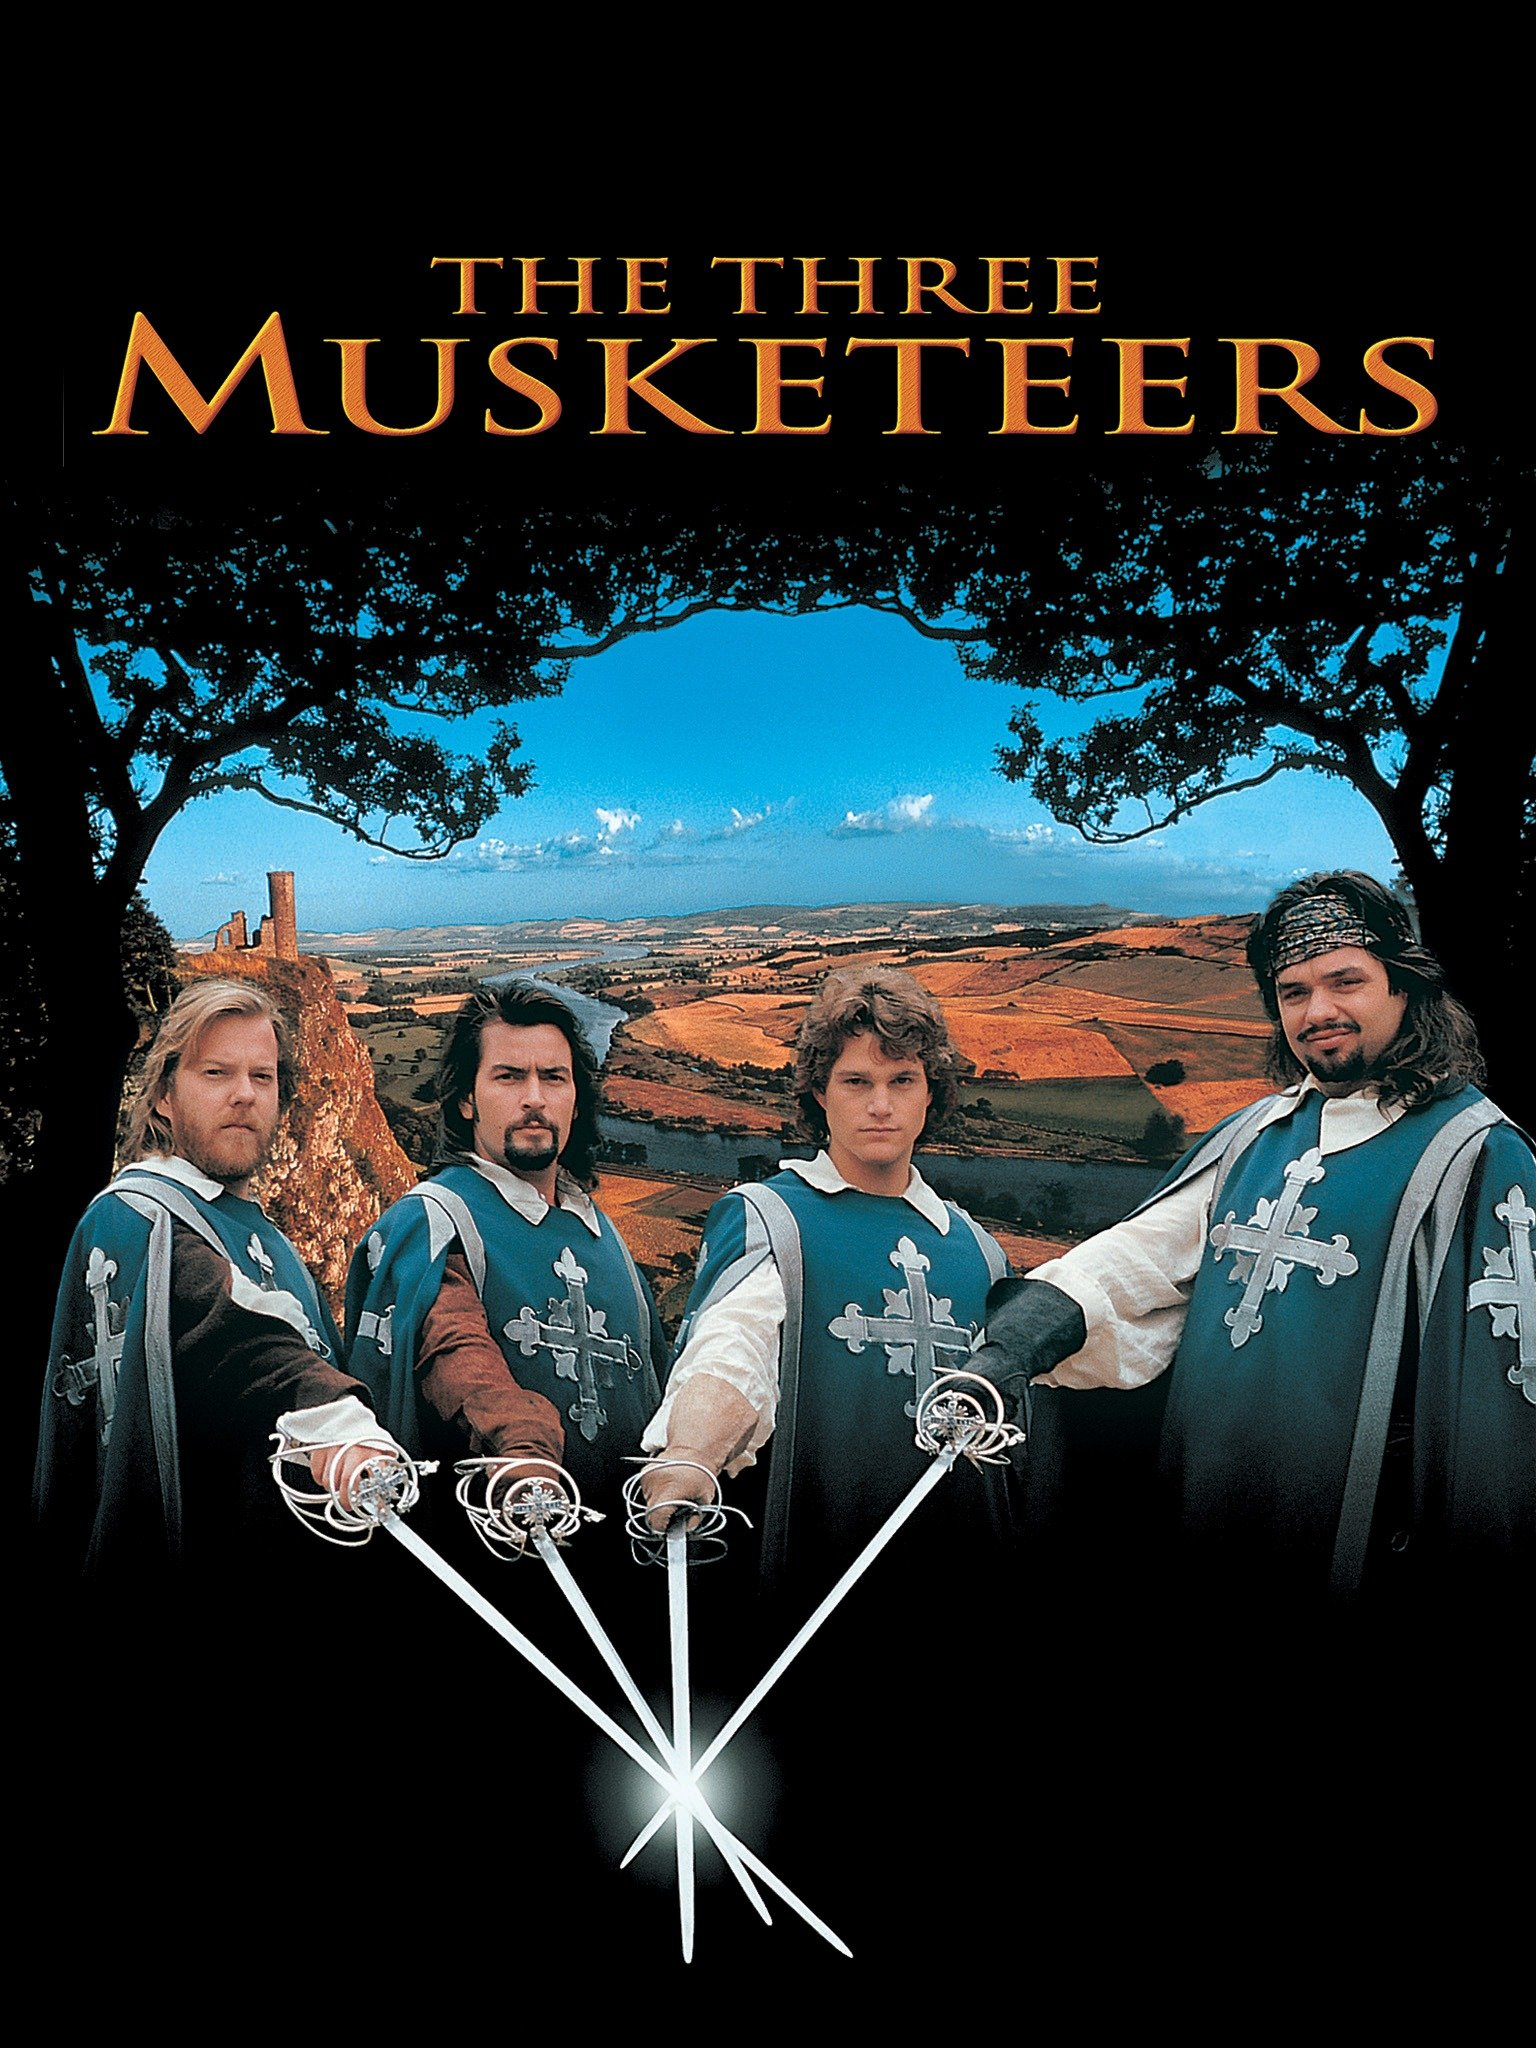 The Three Musketeers 1993 Rotten Tomatoes